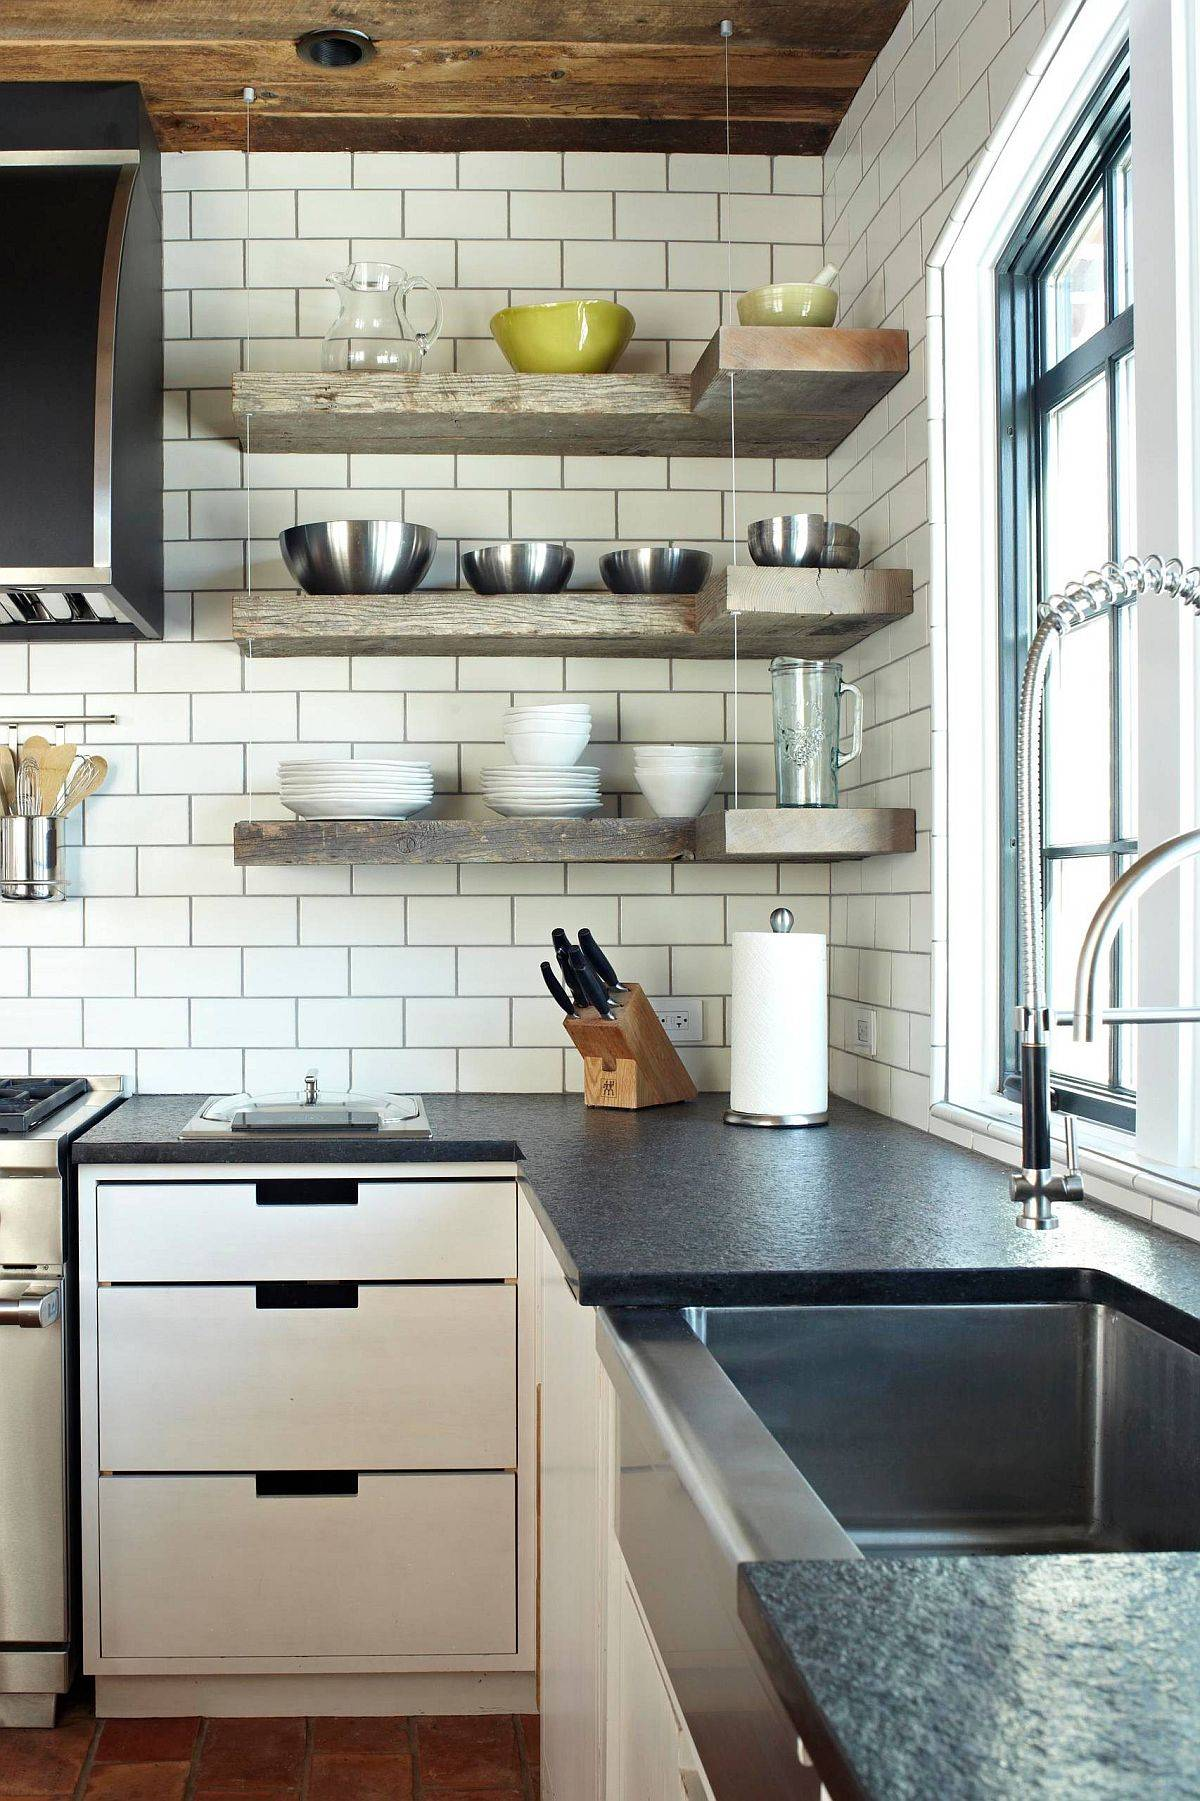 Floating-shelves-in-wood-along-with-cabinets-below-maximize-the-corner-in-this-kitchen-94596